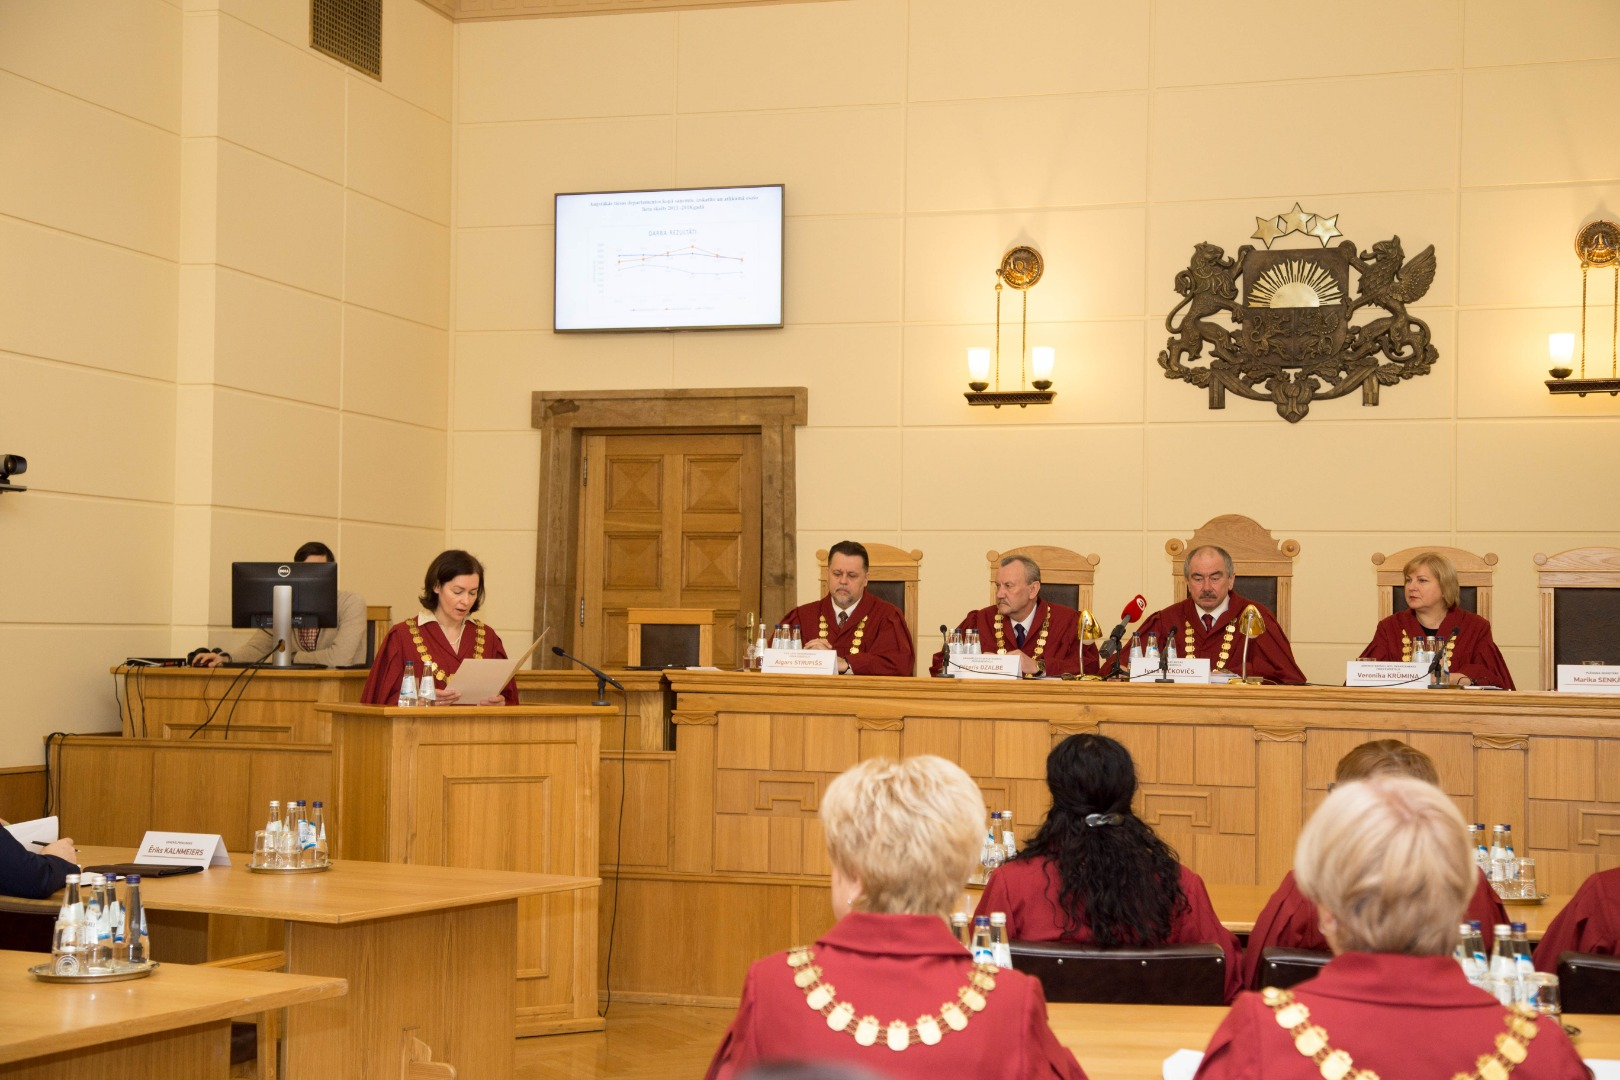 22.02.2019.  Marika Senkane, Secretary of the Plenary Session, reads out the congratulations by the State President Raimons Vejonis for the Plenary Session of the Supreme Court. The President welcomes initiatives of the Supreme Court that have strengthened the rule of law: judges have been involved in explaining the work of the Court and have not refrained from expressing their attitude towards dishonesty and fraud.